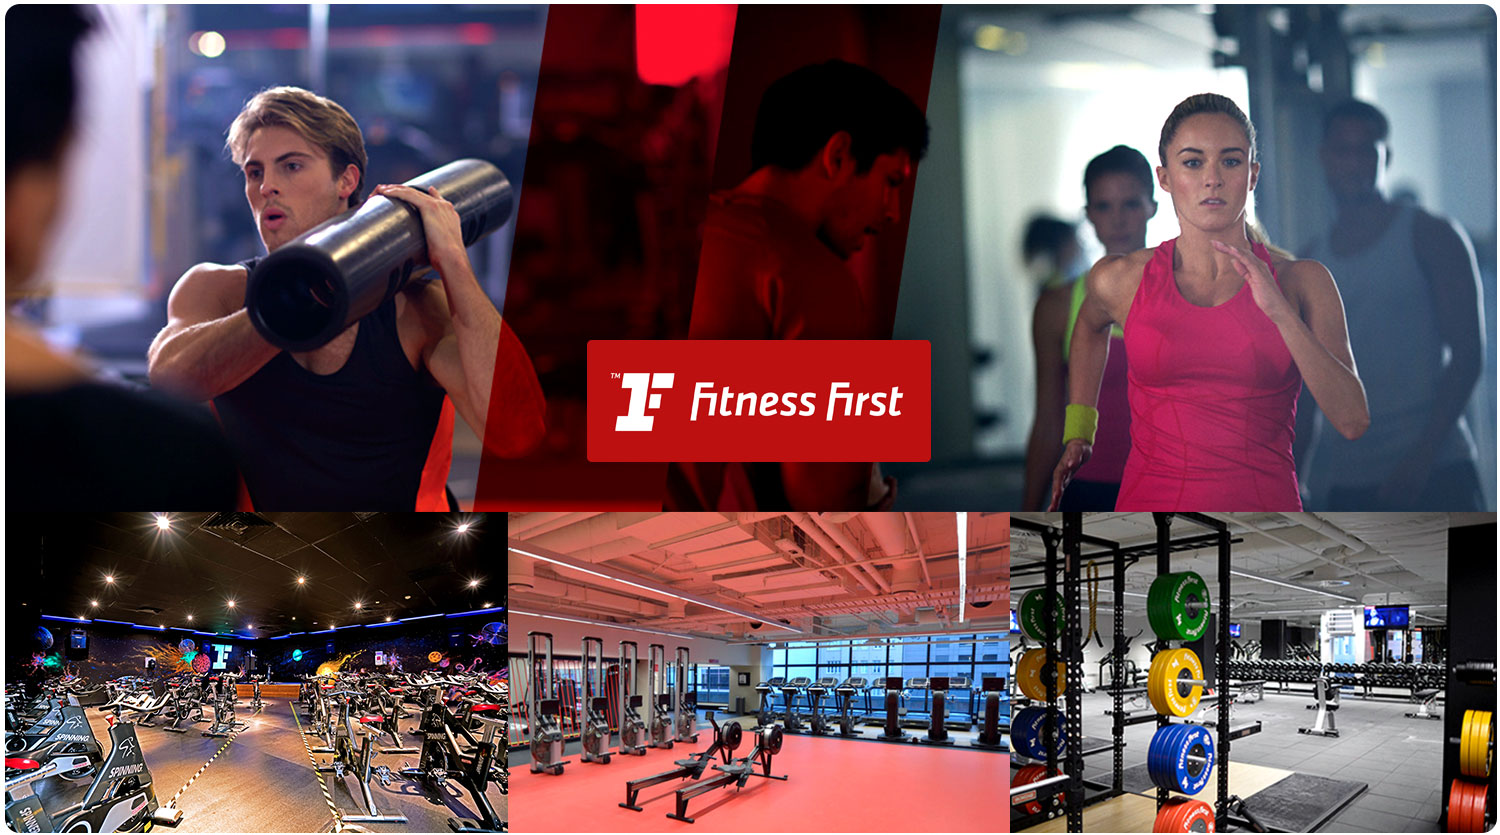 Start your Fitness Journey with Fitness First with only $14.95 for 14 days at Fitness First North Strathfield NSW. Experience our first class gym and freestyle classes inc. Zumba, Pilates, Yoga, HIIT, Les Mills and more. Take the first step with Fitness First North Strathfield NSW.